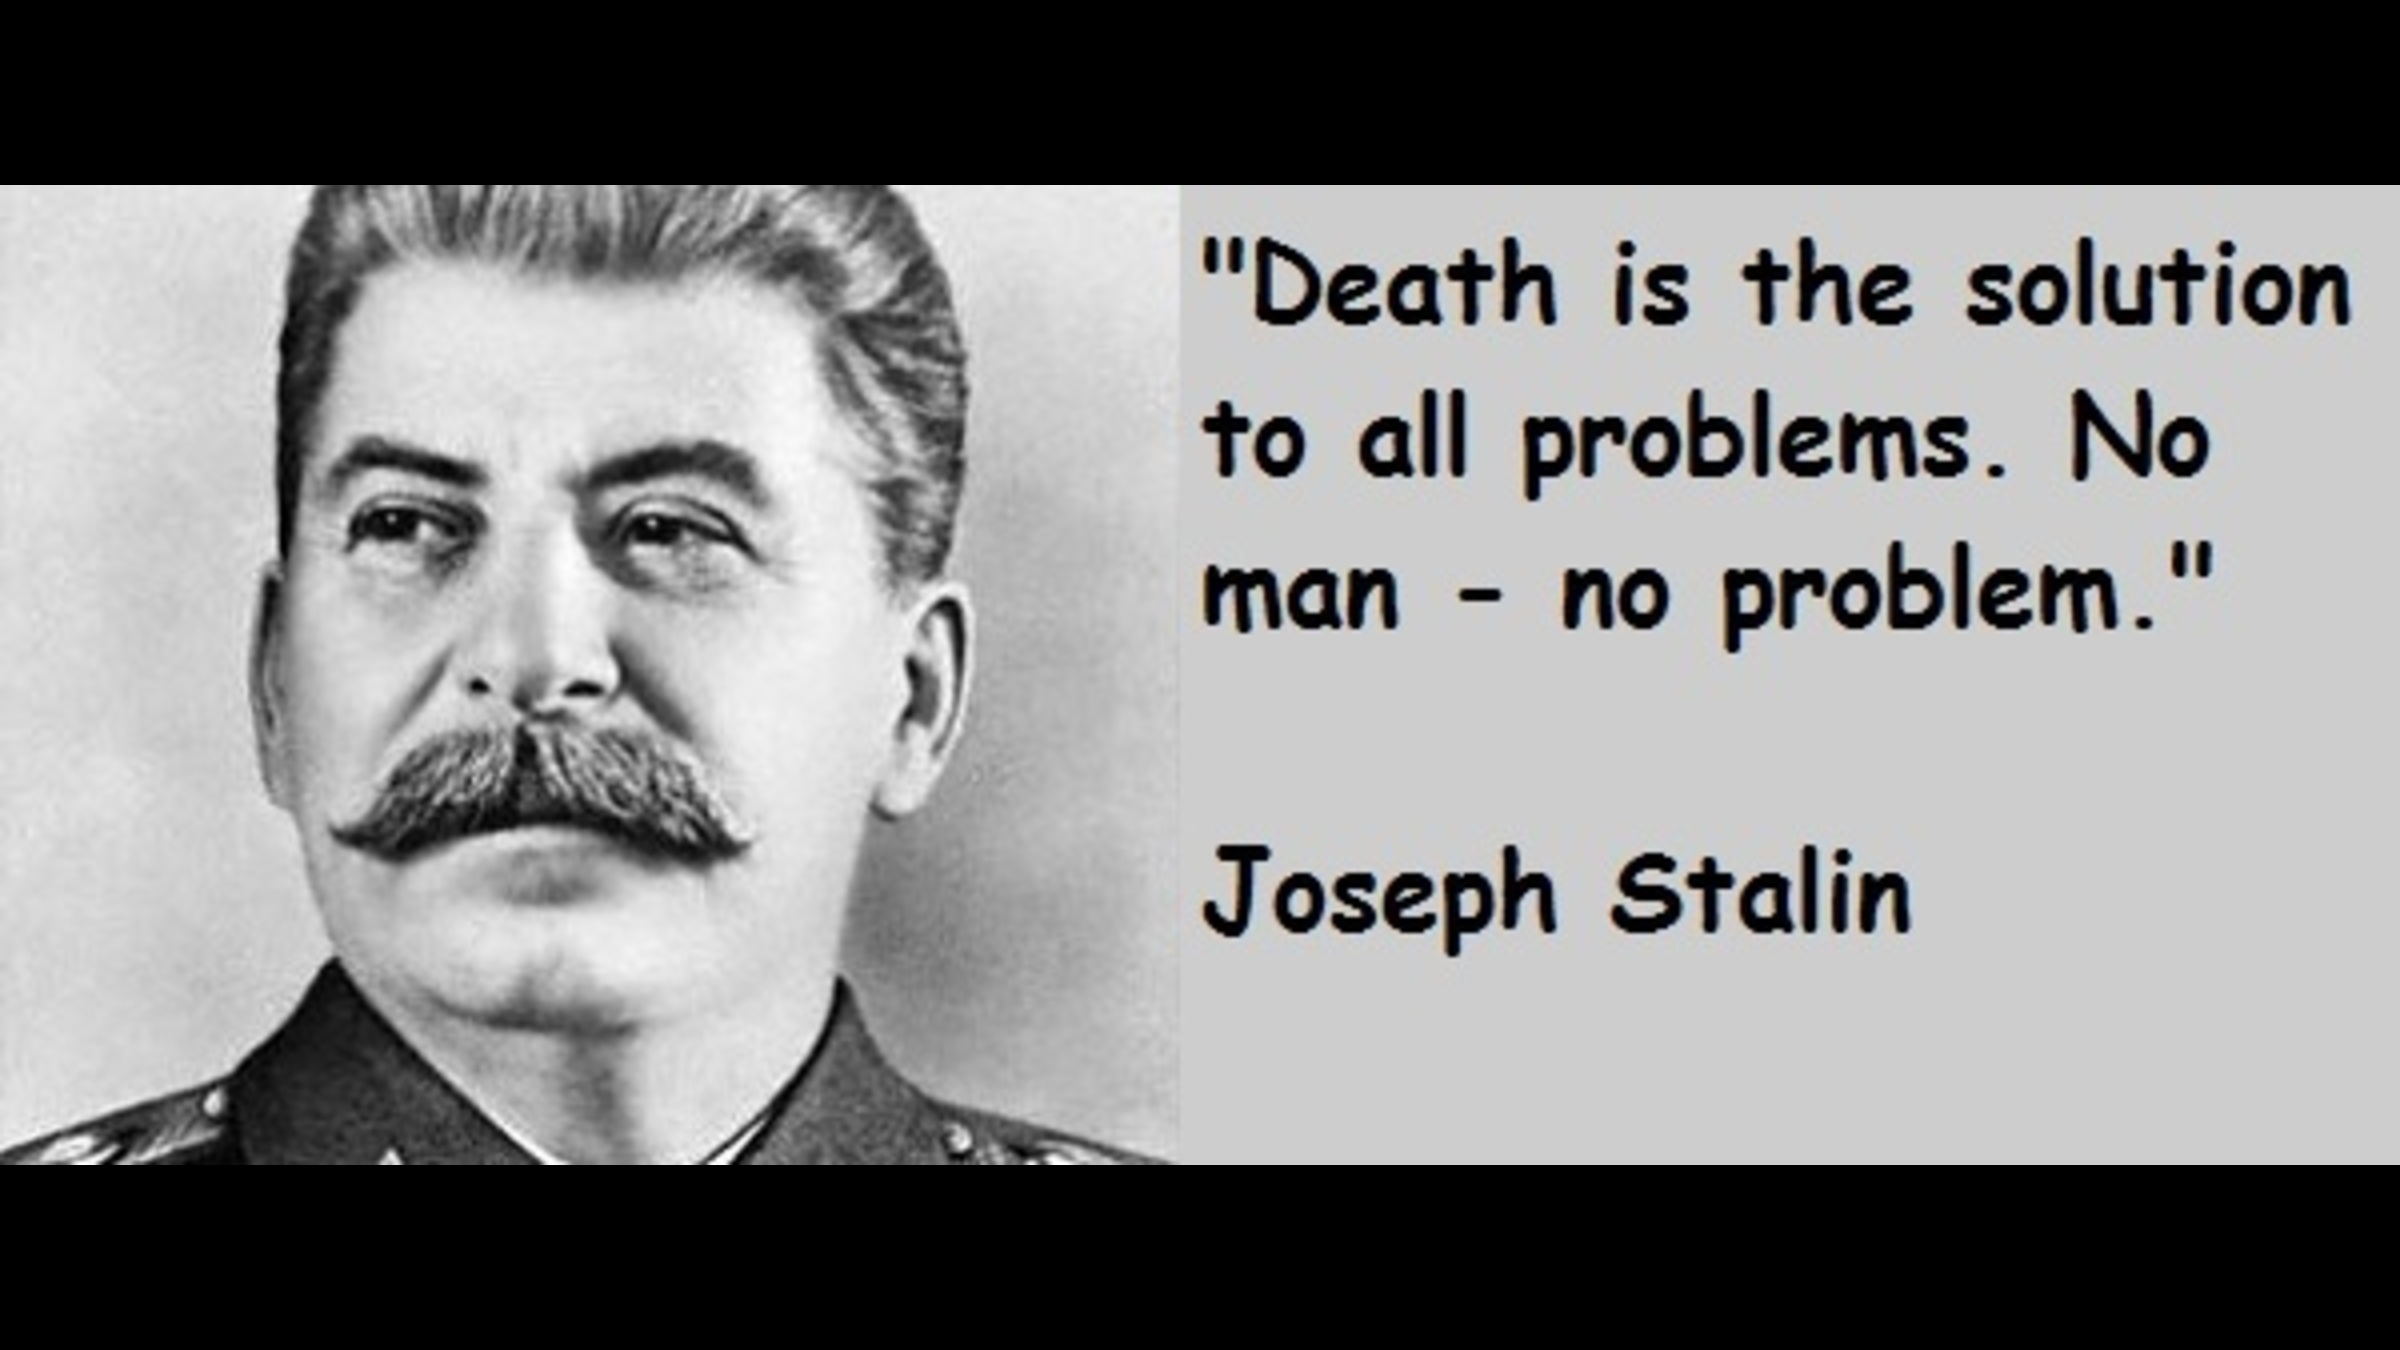 Joseph Stalin: National hero or cold-blooded murderer?